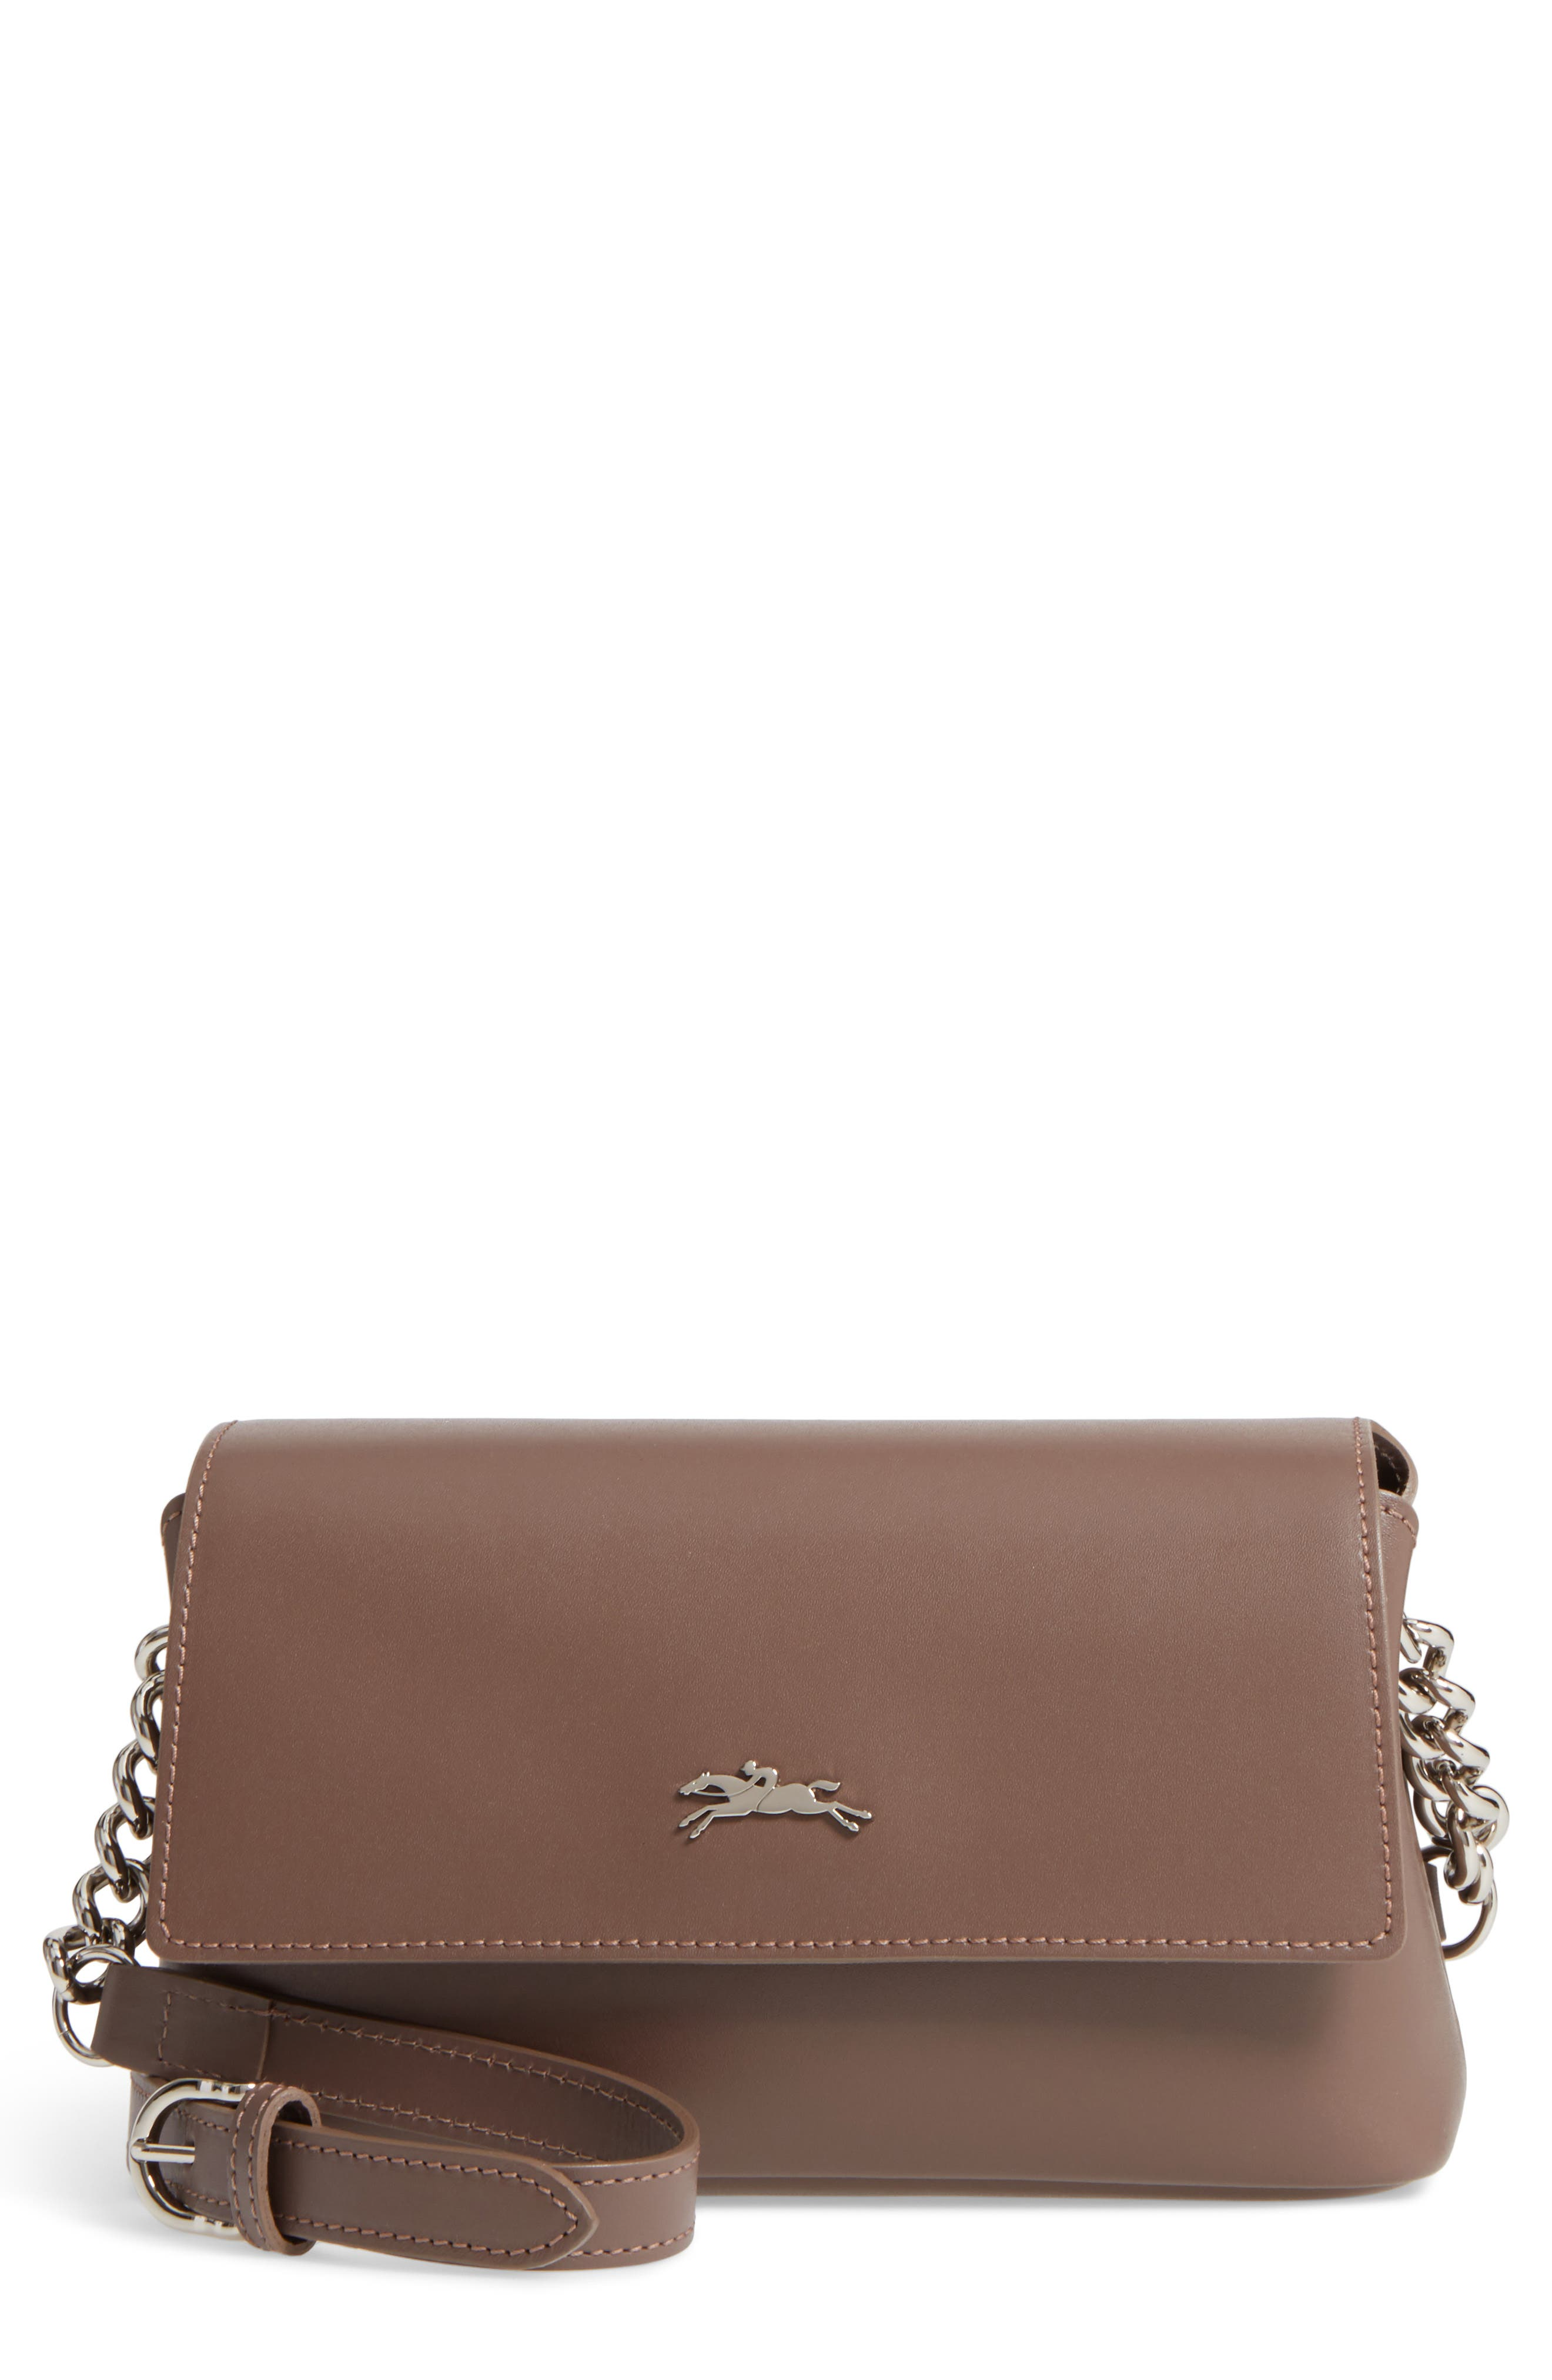 Longchamp 'Honore' Crossbody Bag